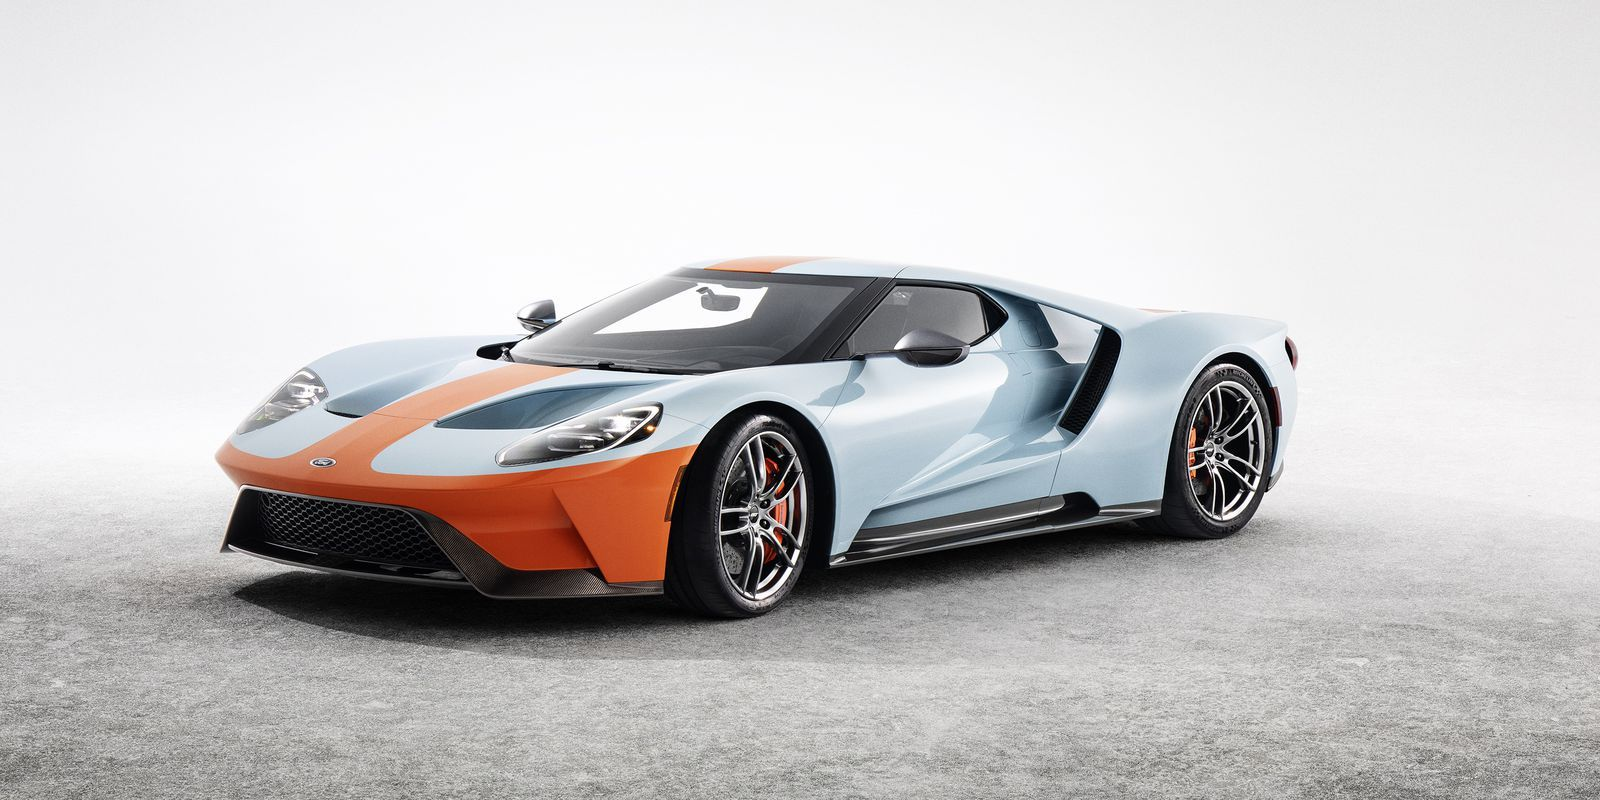 The 2019 Ford Gt Heritage Edition Is An Exquisite Gulf Liveried Tribute Ford Gt Ford Gt Gulf Ford Gt40